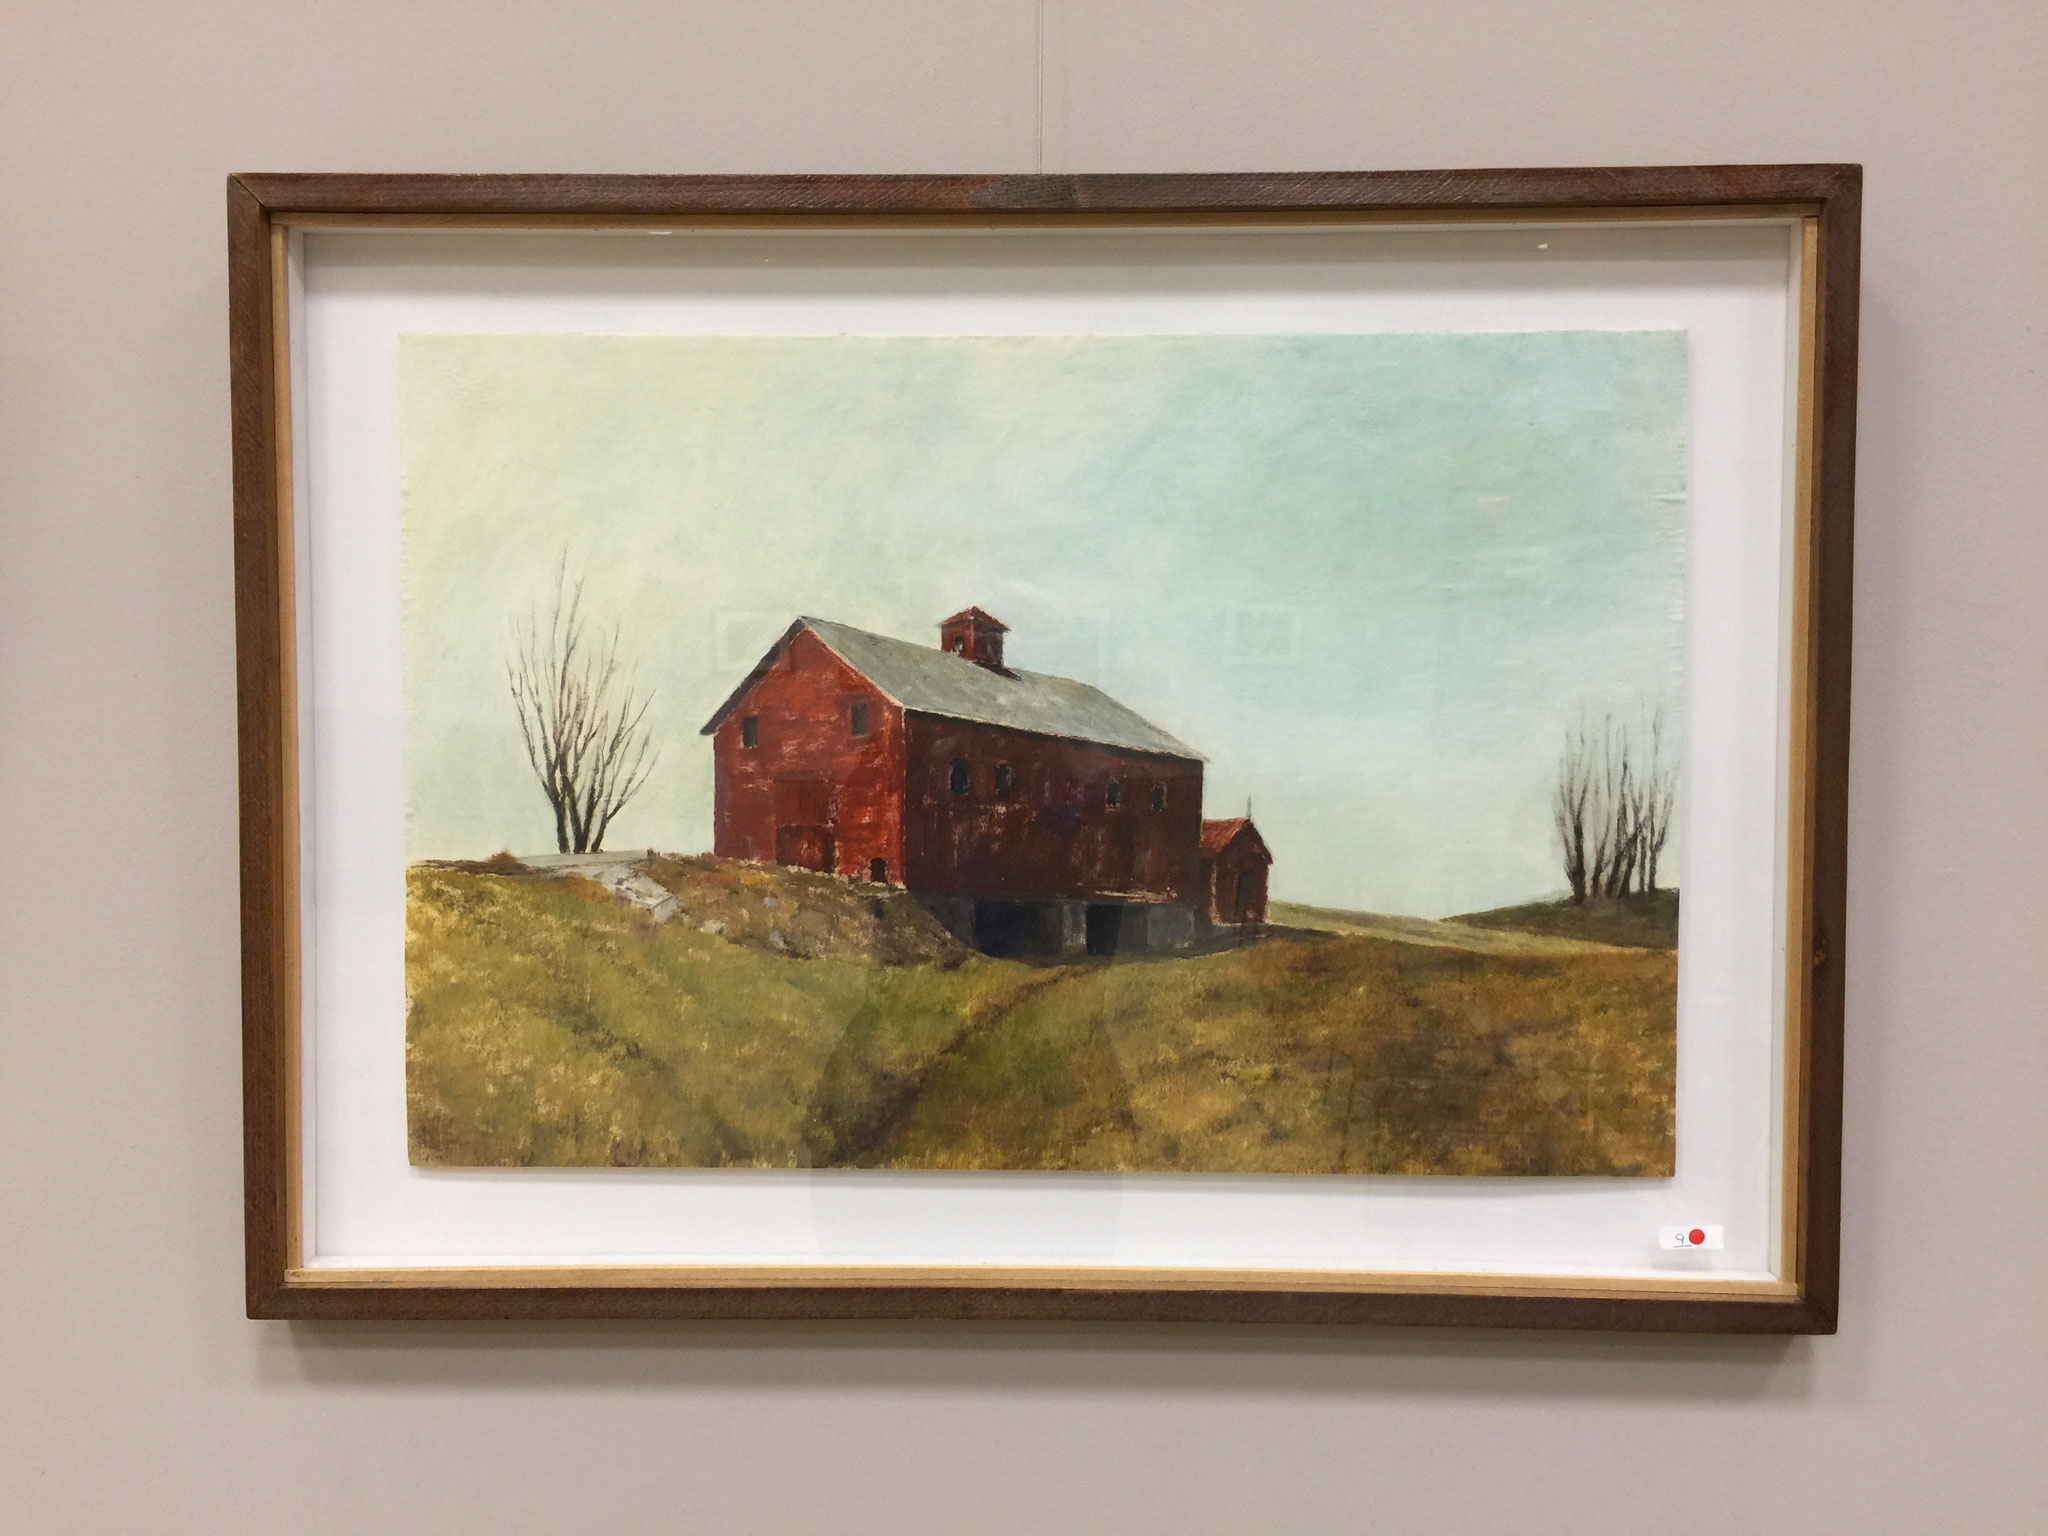 Guido Guazzoni, The Red Barn